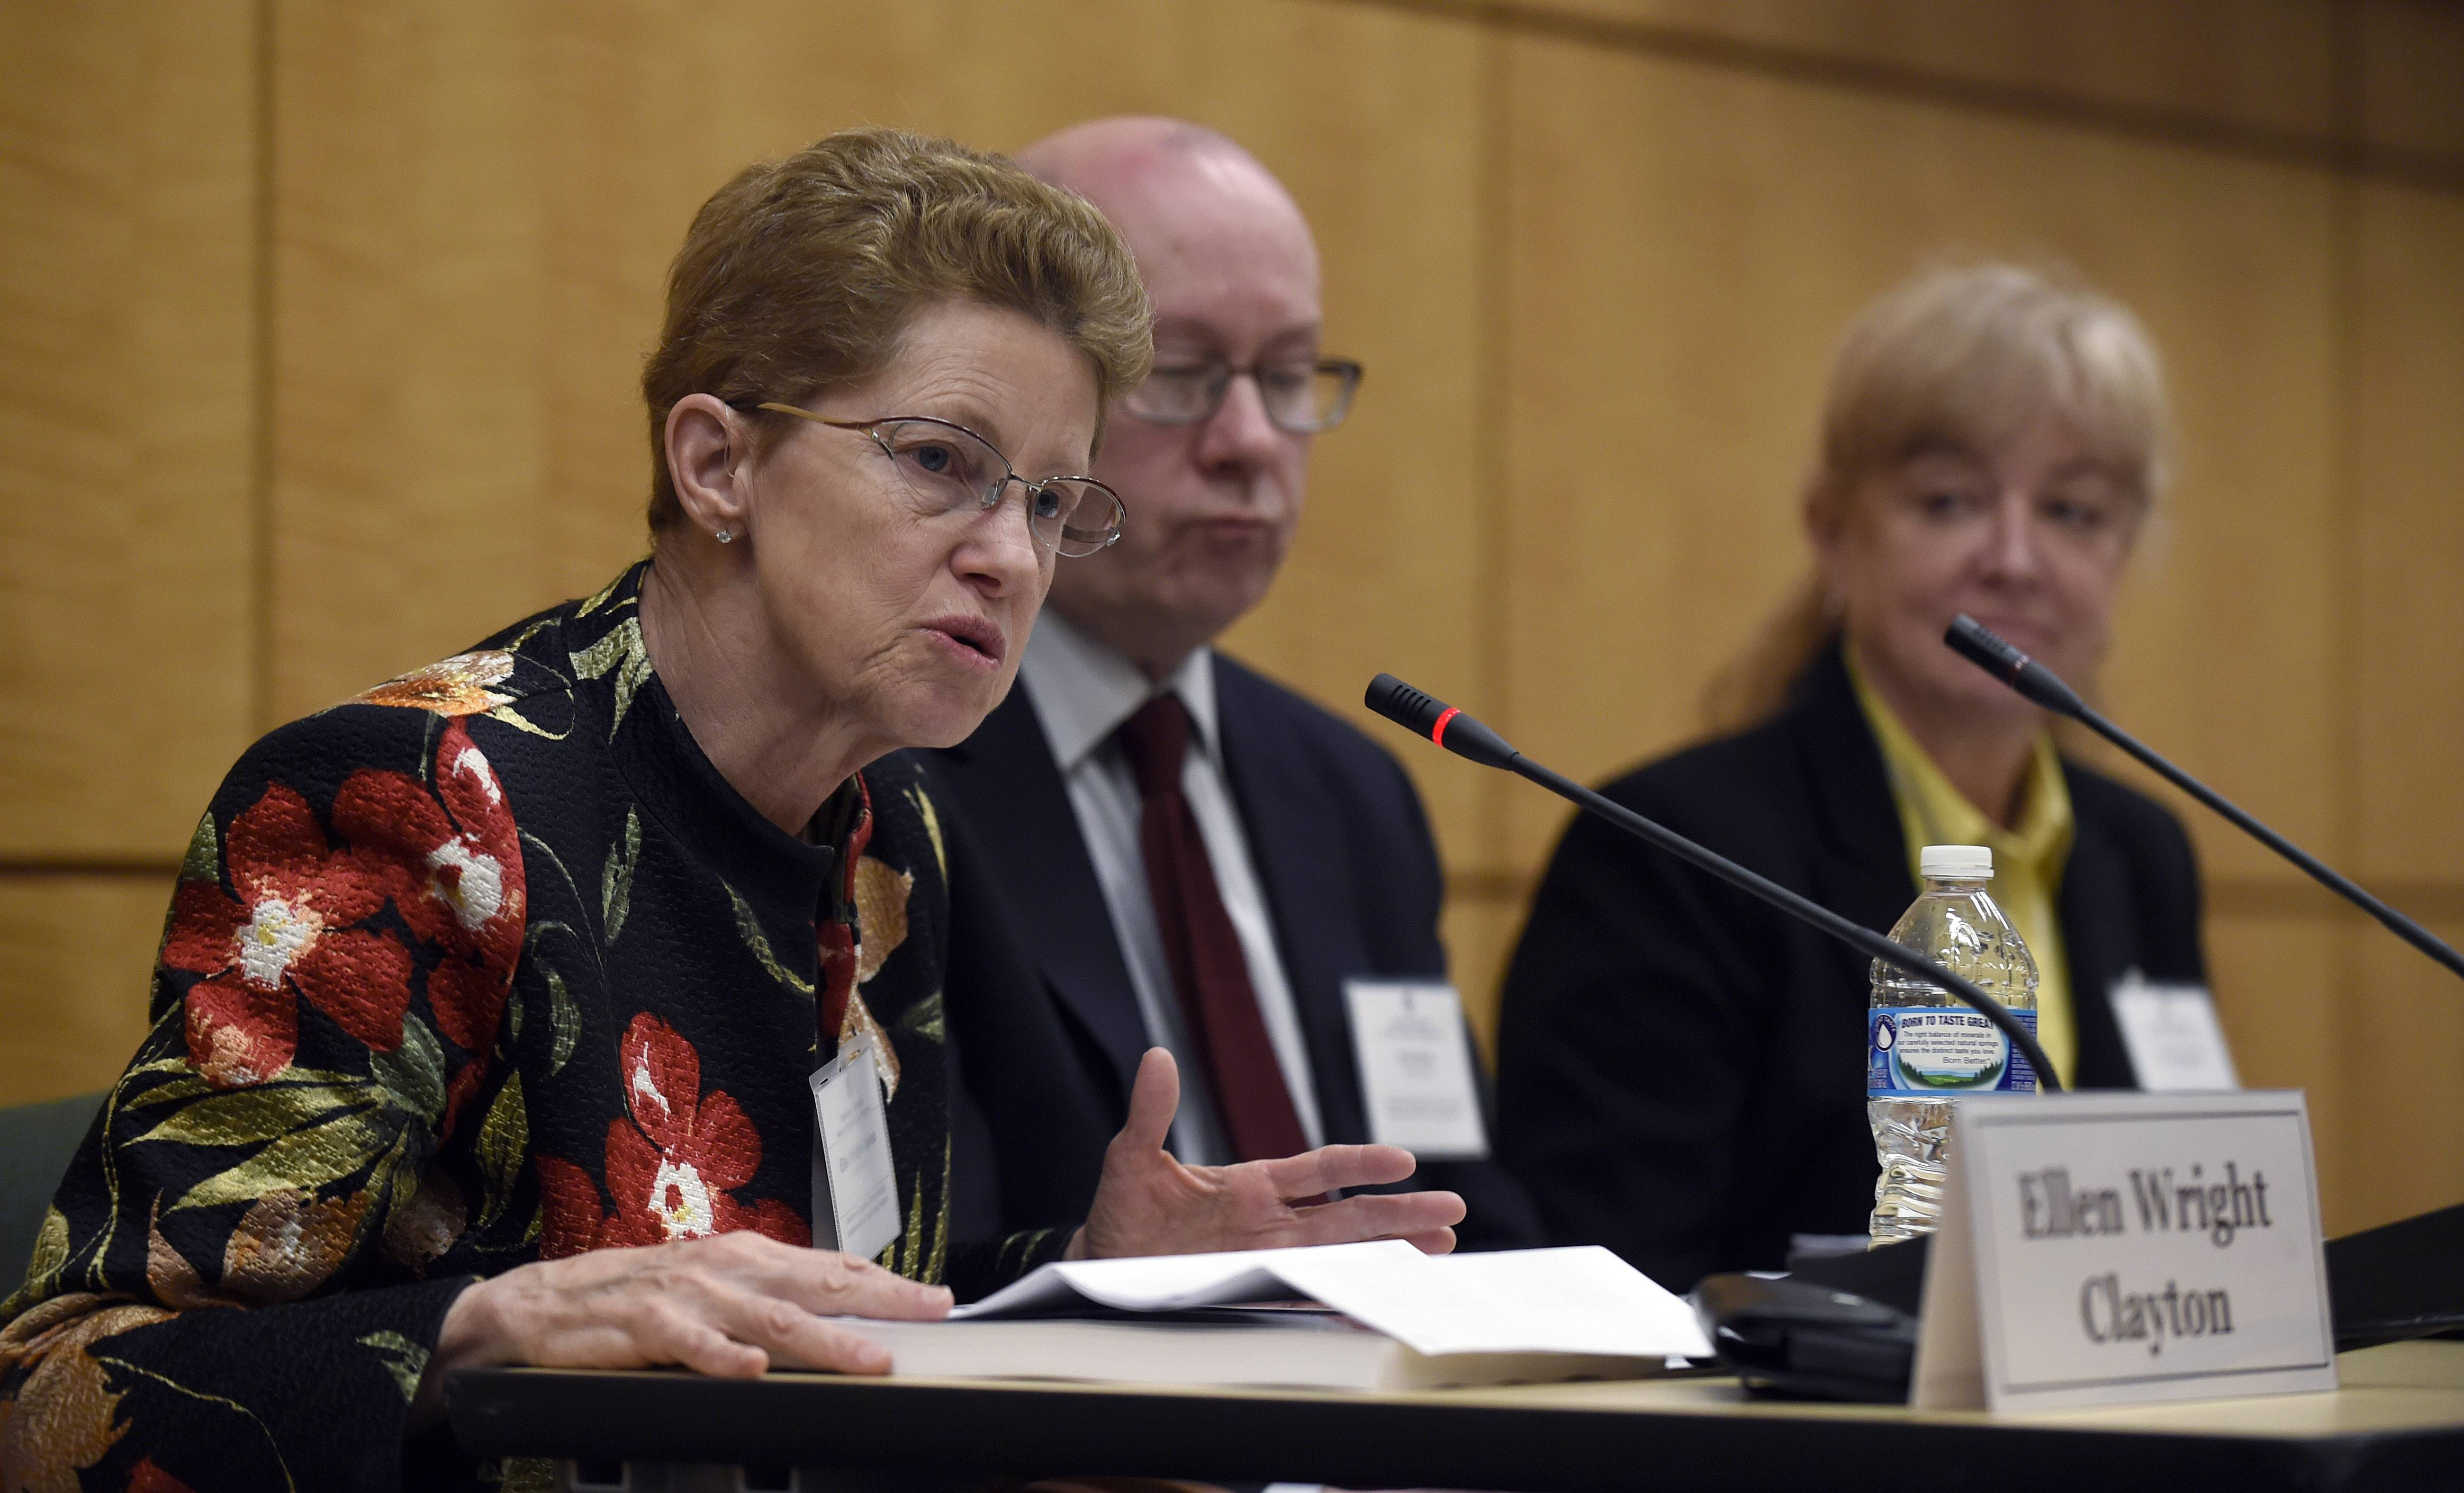 Dr. Ellen Wright Clayton, left, chair of the Committee on Diagnostic Criteria for Myalgic Encephalomyelitis/Chronic Fatigue Syndrome, speaks during an open meeting at the Institute of Medicine in Washington Feb. 10.